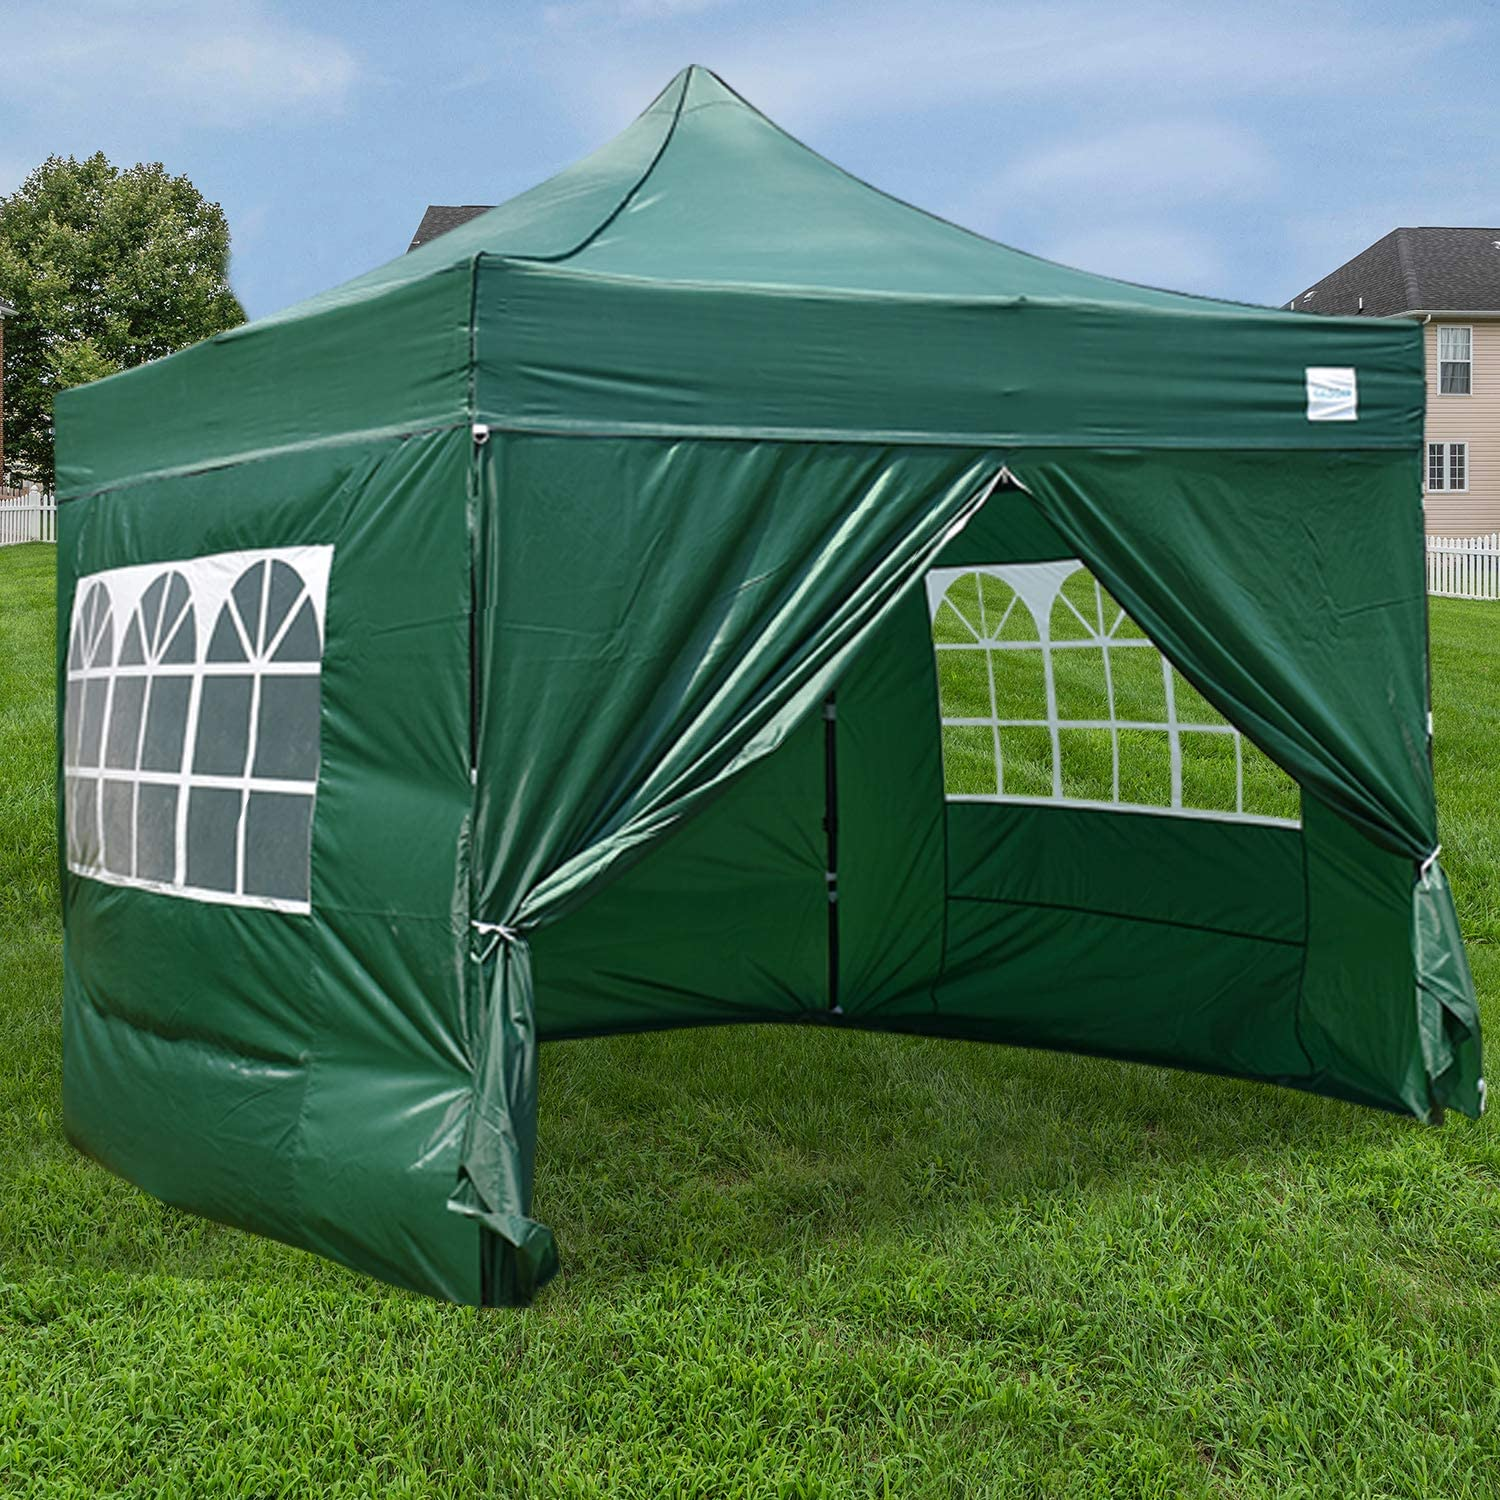 Galsoar Pop Up Canopy 10×10 Commercial Gazebos, Ez Up Canopy Tent Instant Shelter with 4 Removable Sidewalls and Roller Bag Bonus 4 Weight Bags, Suitable for Party, Picnics, Market Stall, Green